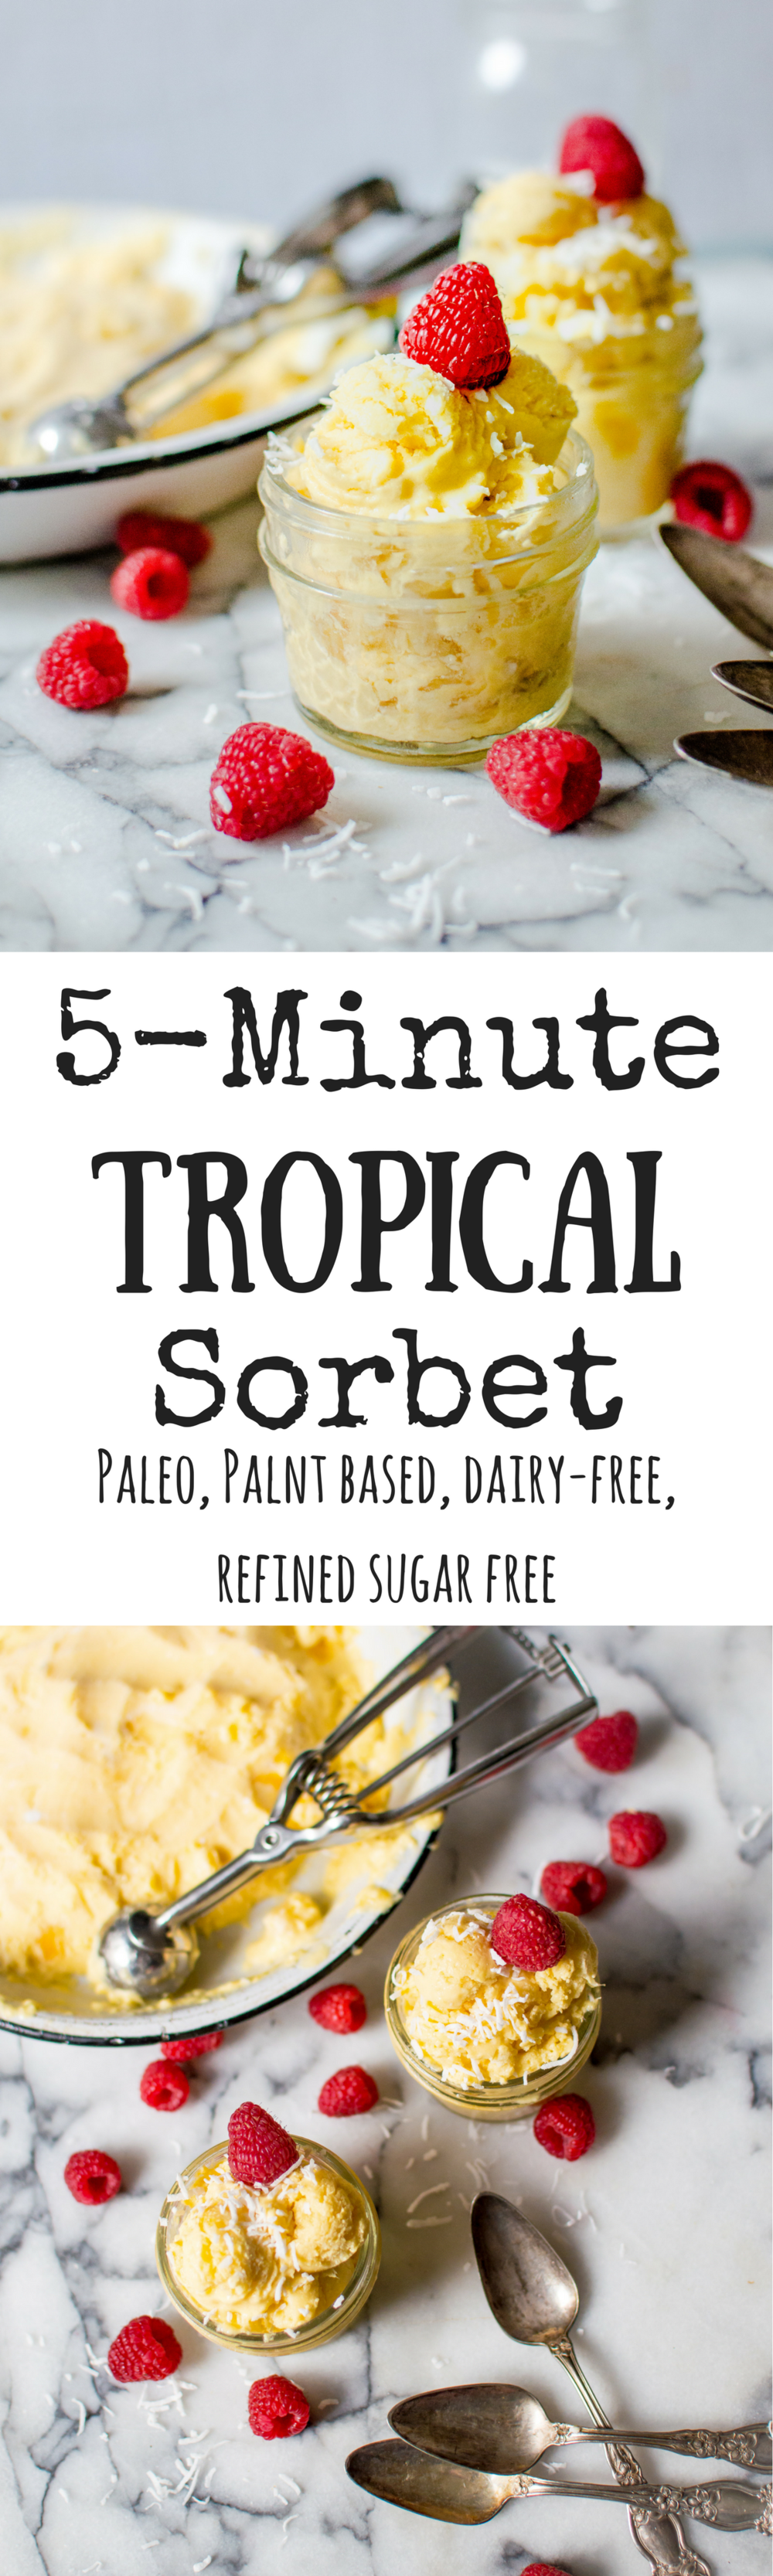 5-Minute Tropical Sorbet